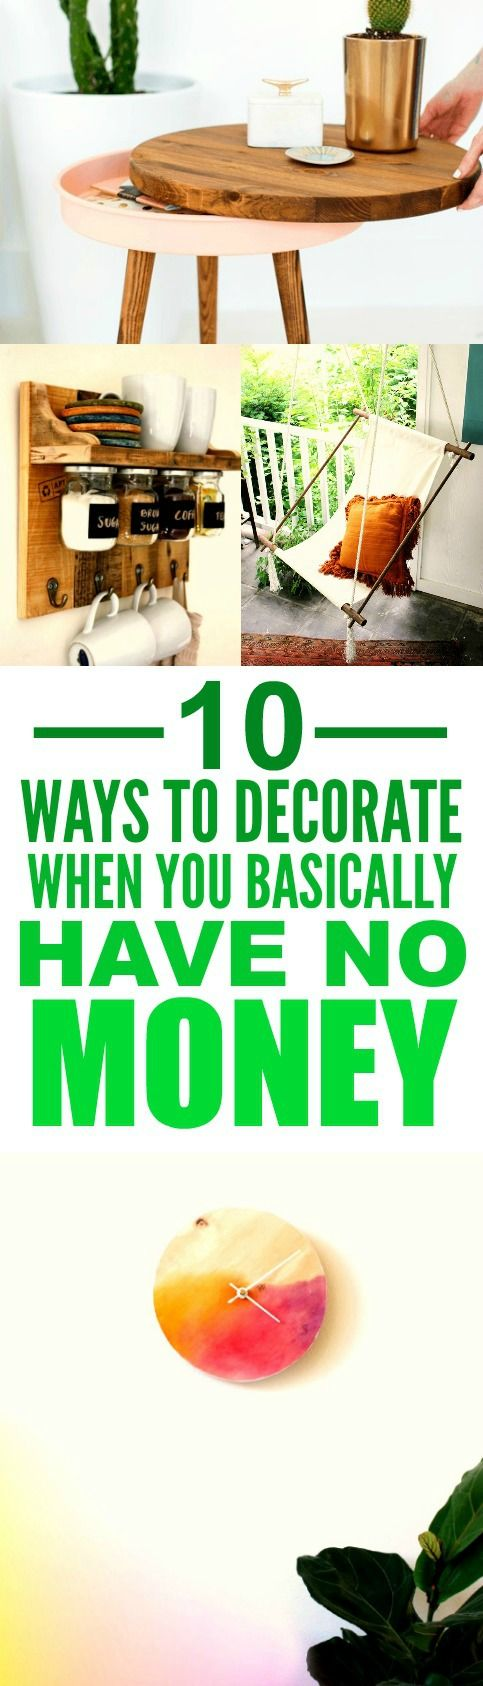 10 Cheap Home Decor Ideas That Will Make Your Home Look Expensive